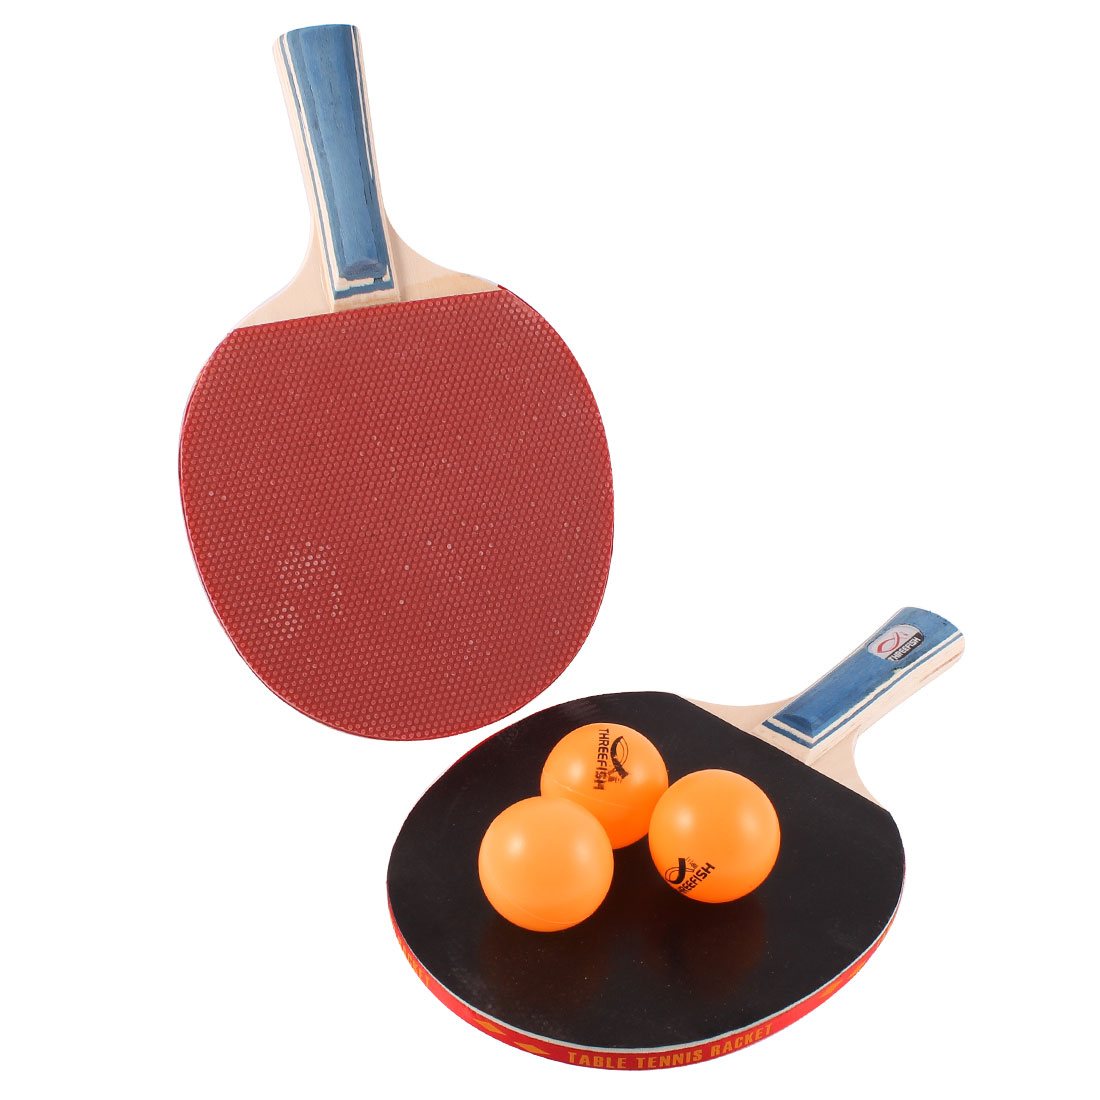 Recreational Table Tennis Wooden Penhold Racket Bat Paddle w 3 Balls Black Red Pair